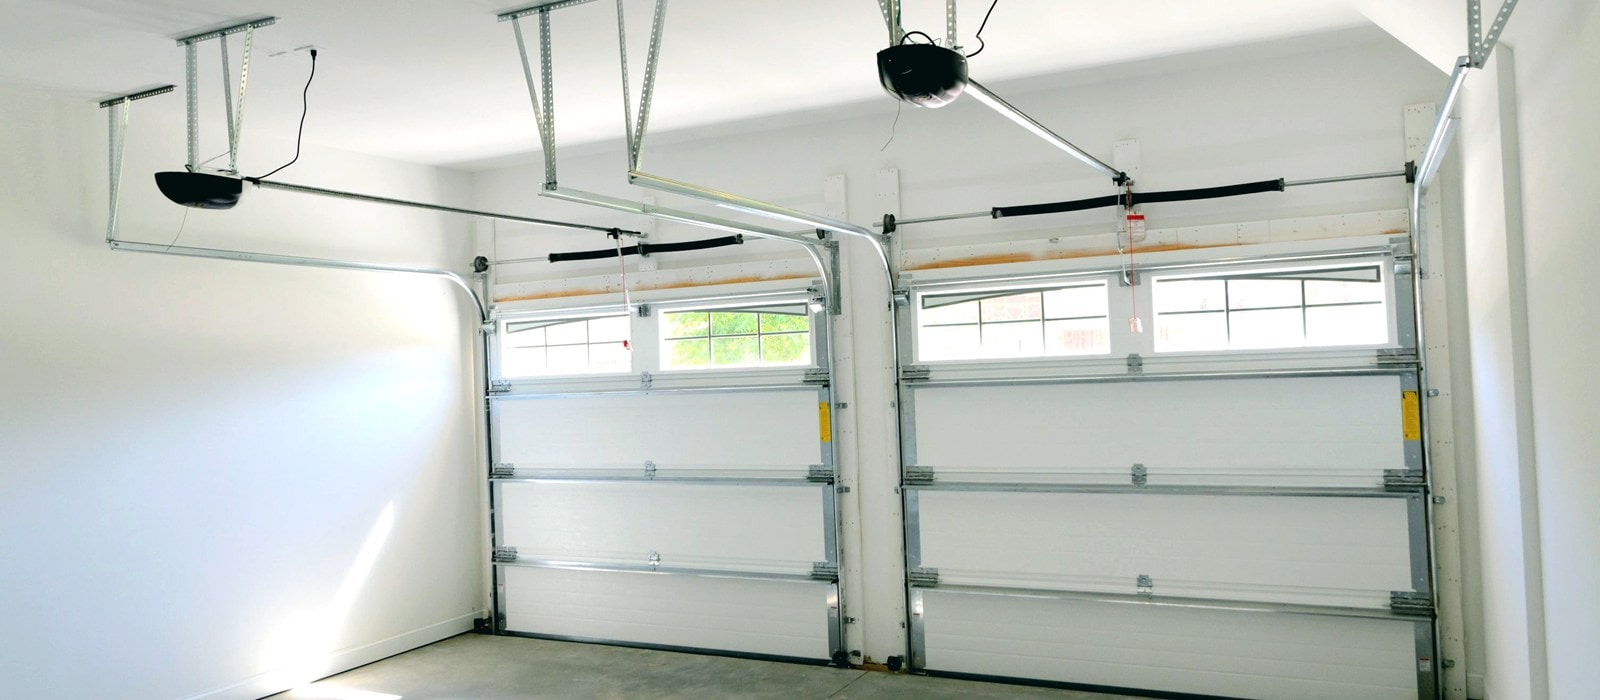 24 hour garage door repair service emergency services